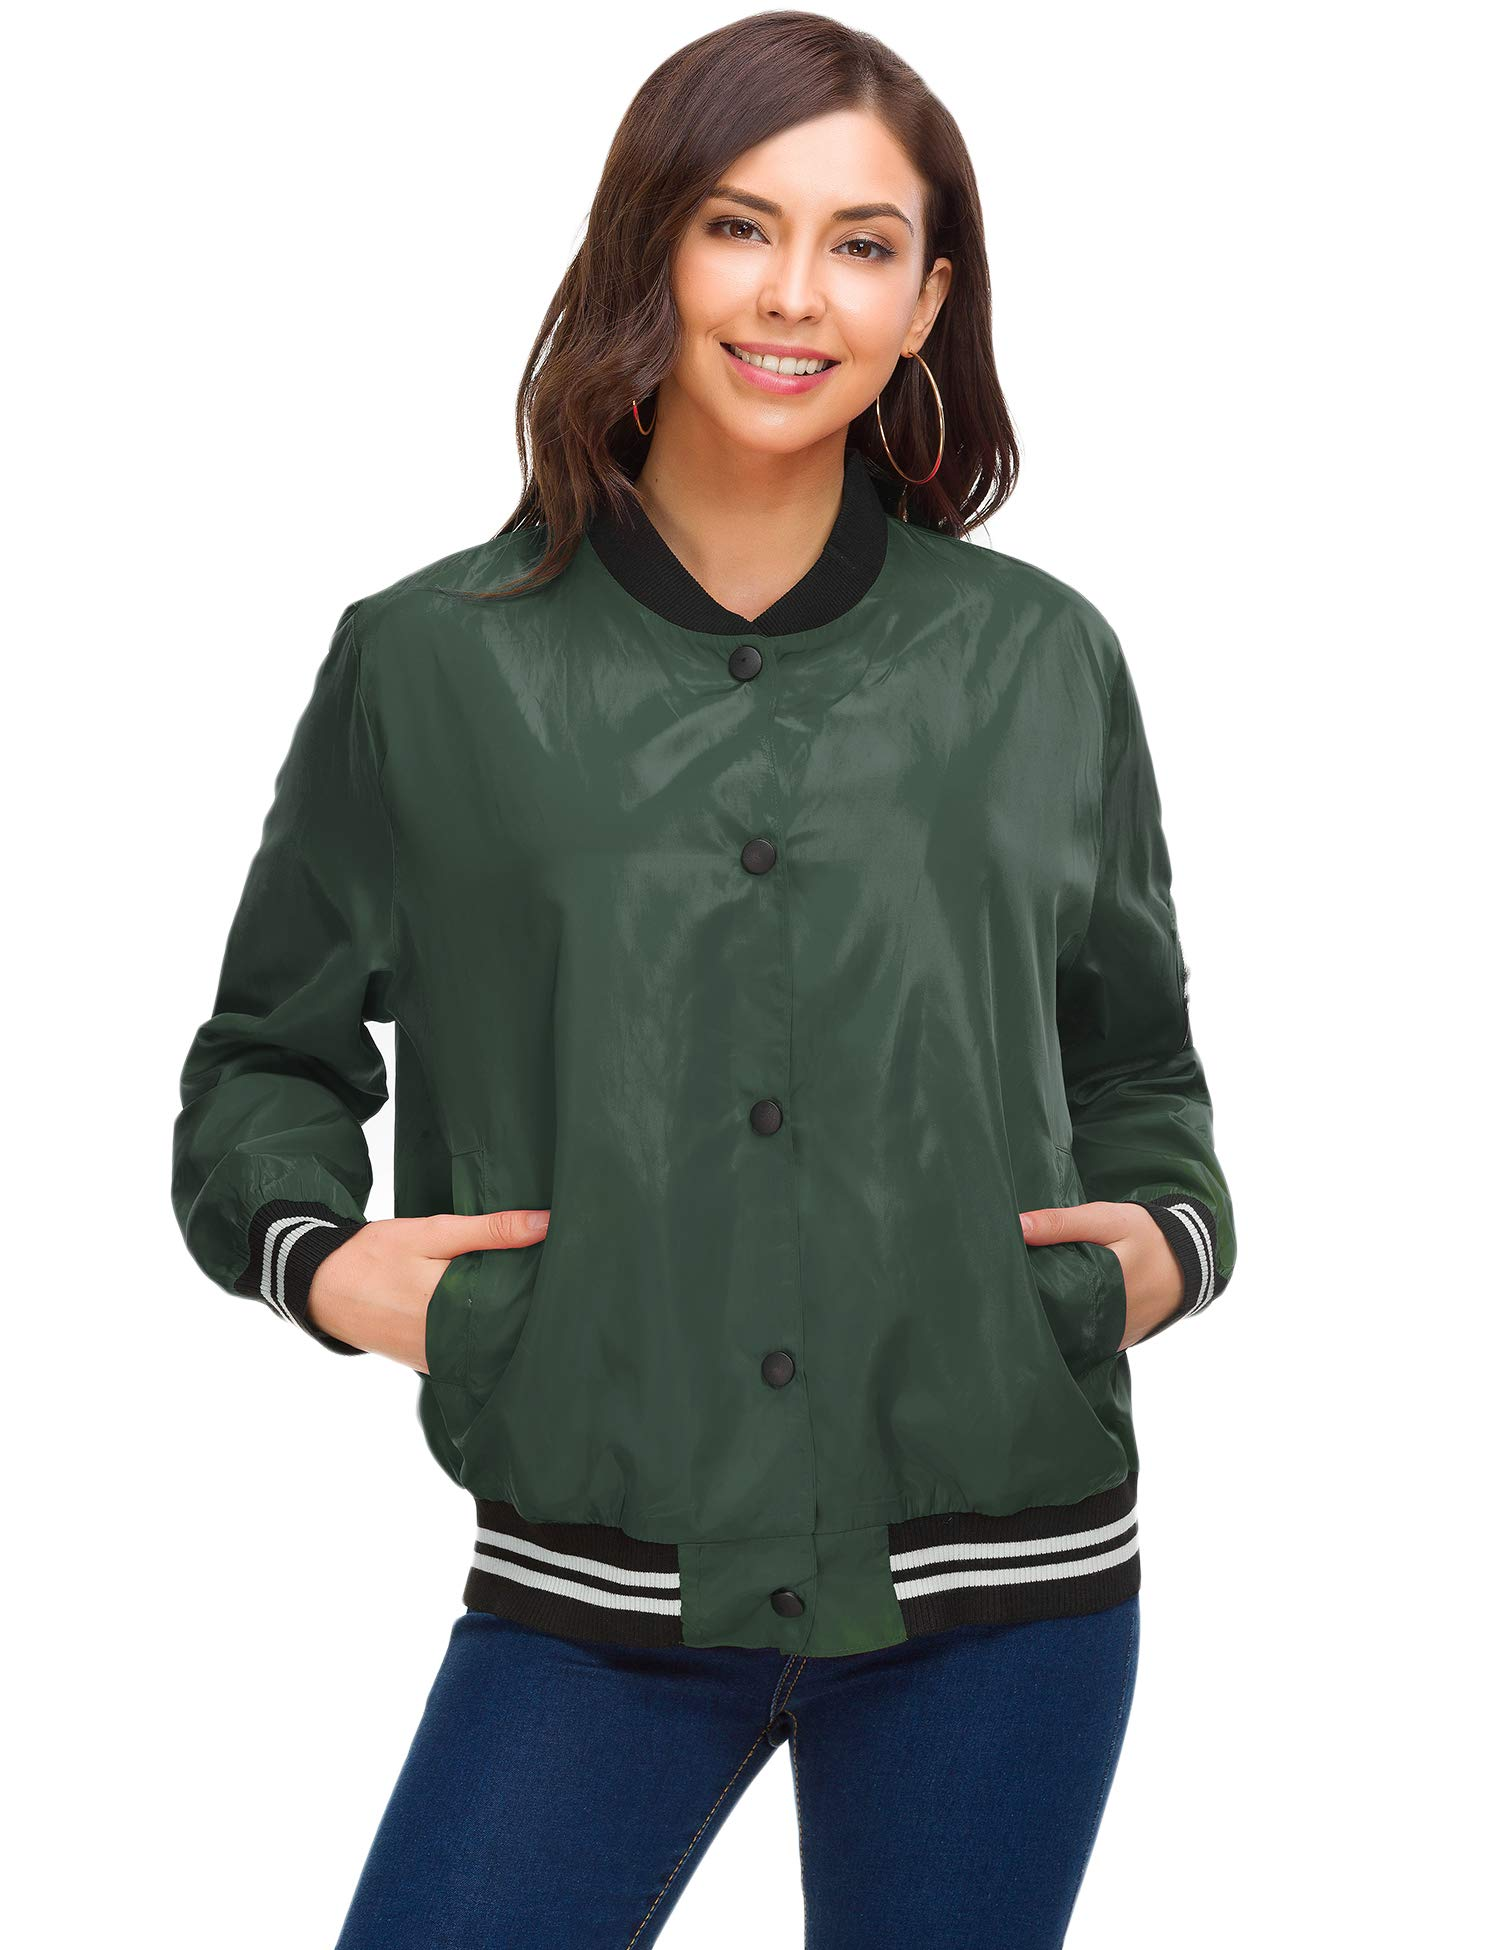 Women Classic Quilted Lightweight Flight Bomber Jacket Solid Loose Fit Windbreaker Warm Stylish Casual Outwear